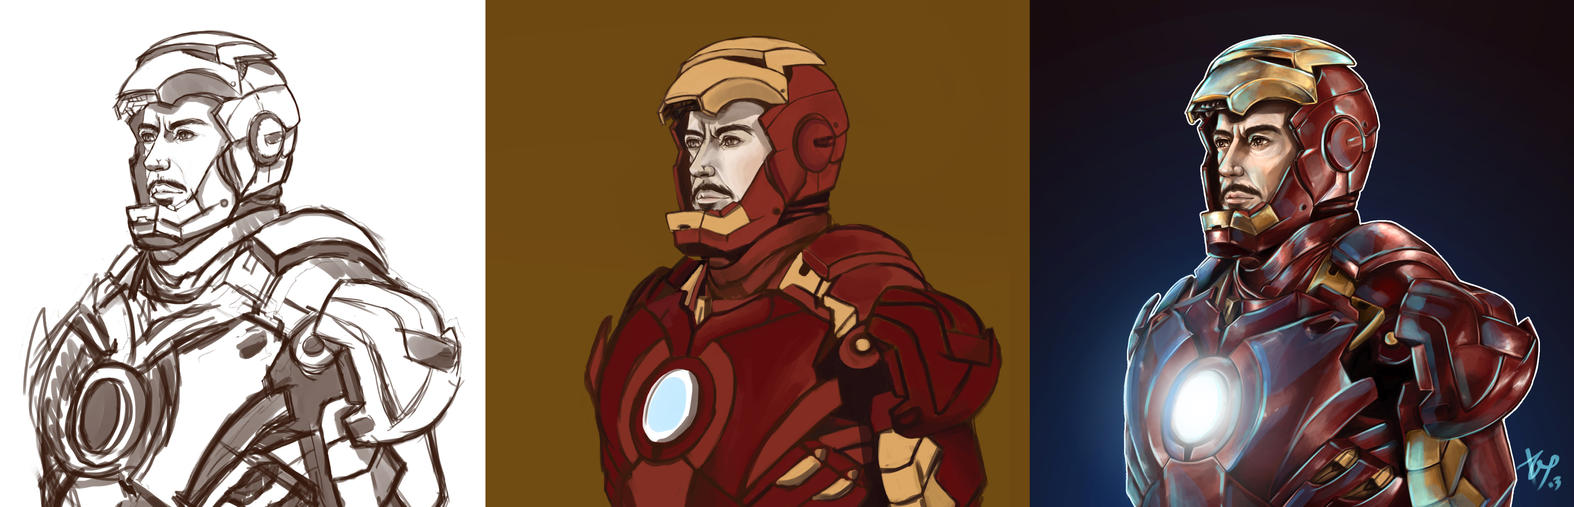 Process of Iron Man by Esthiell